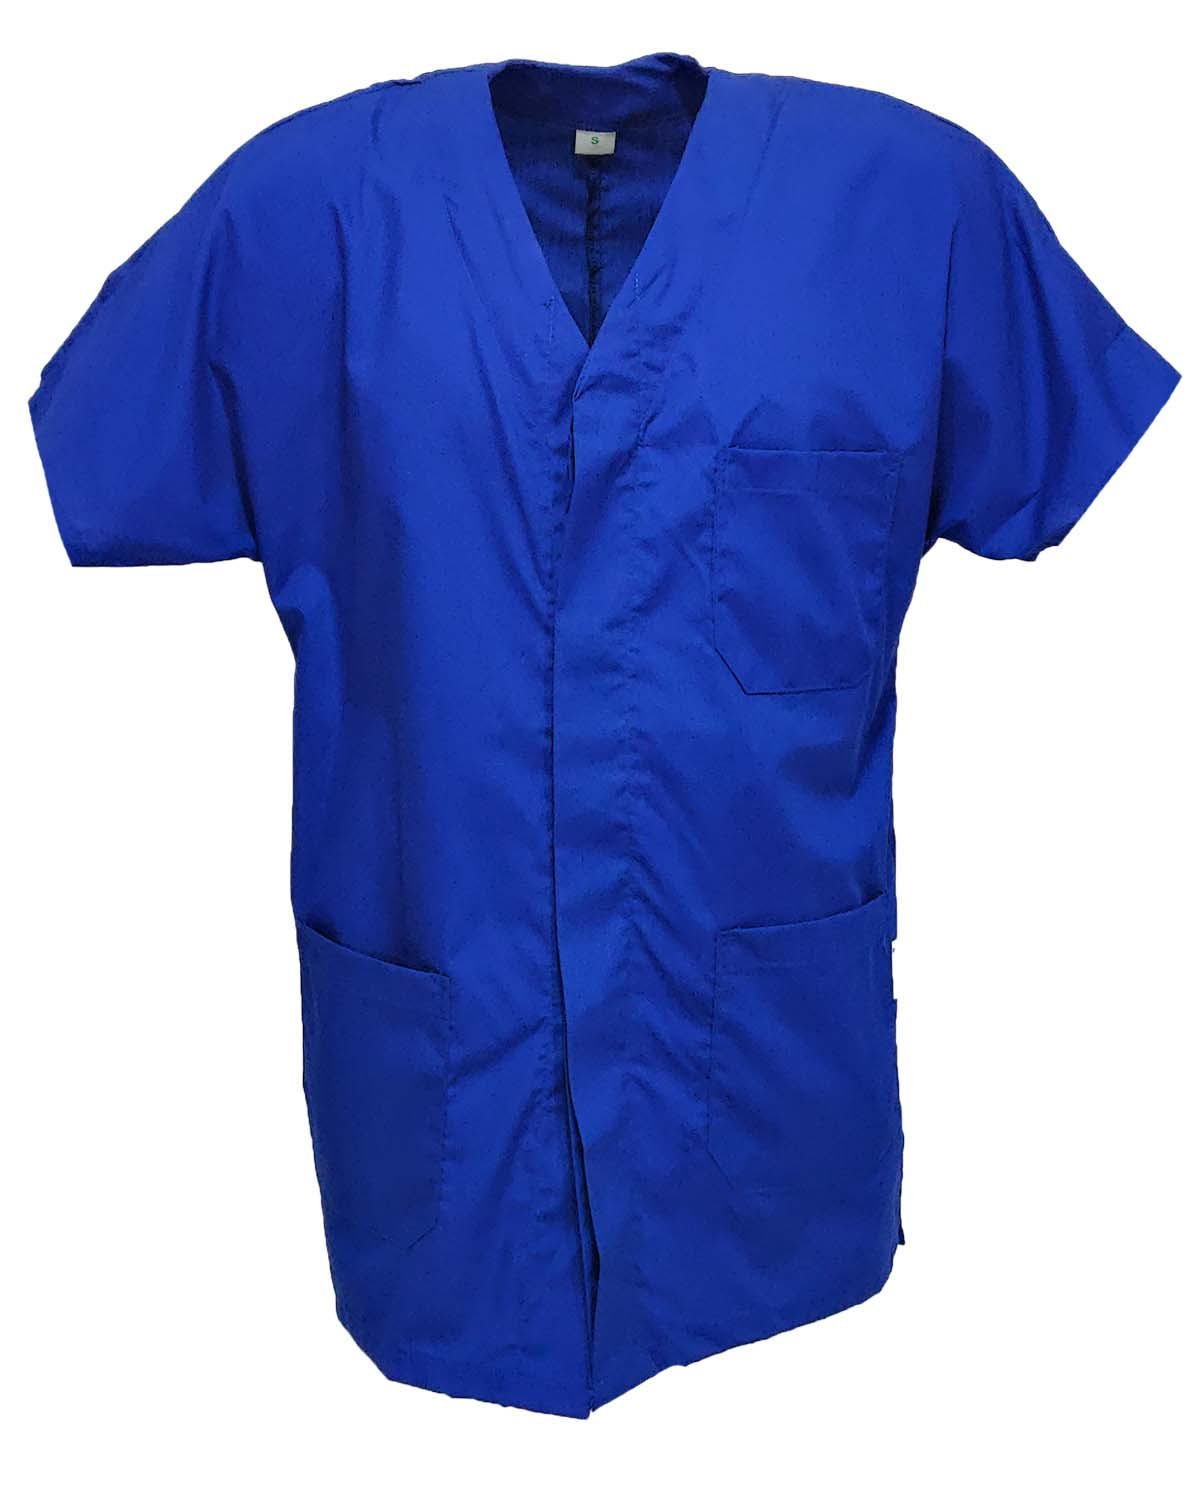 Shirts hospital tunic with button placket clinical short-sleeved hospital